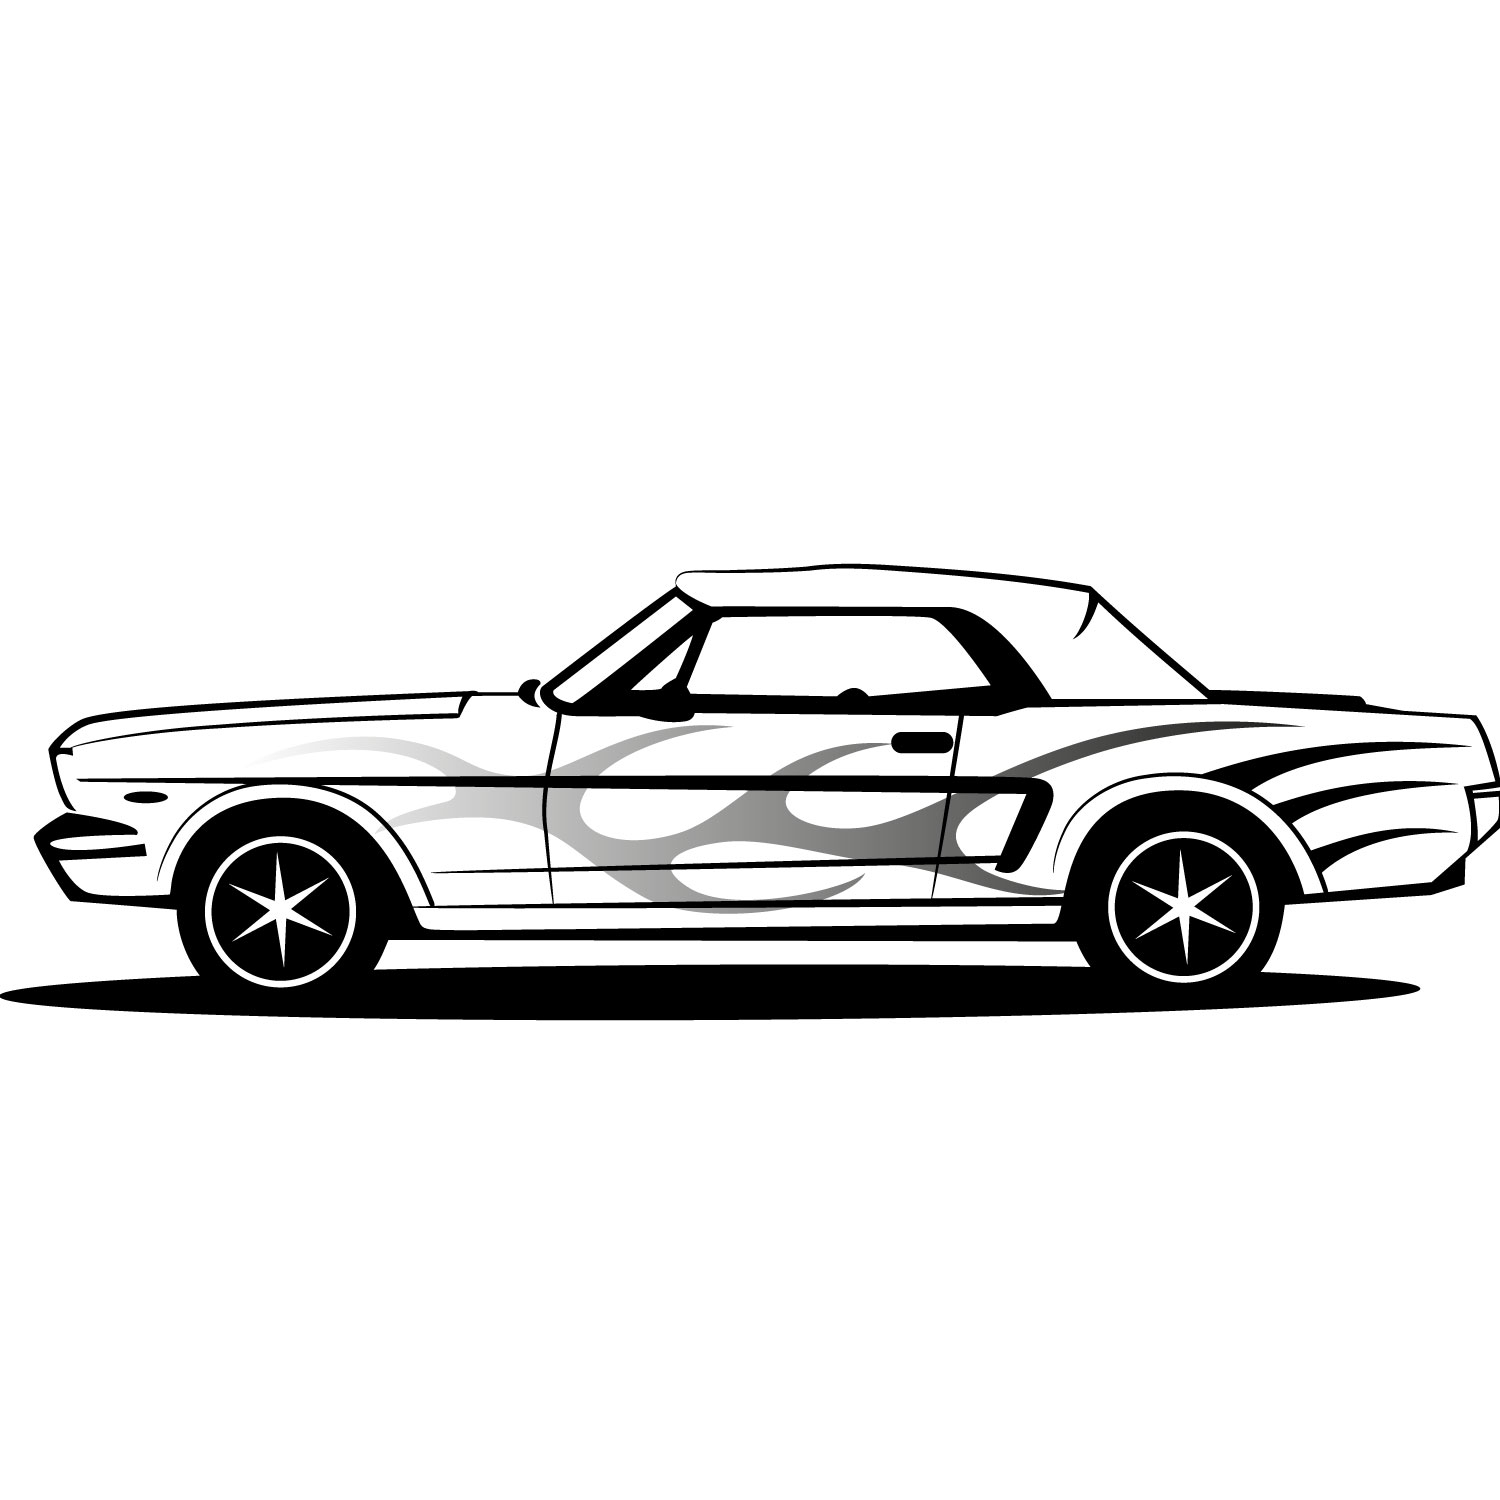 Mustang clipart images or stallion mascot 2